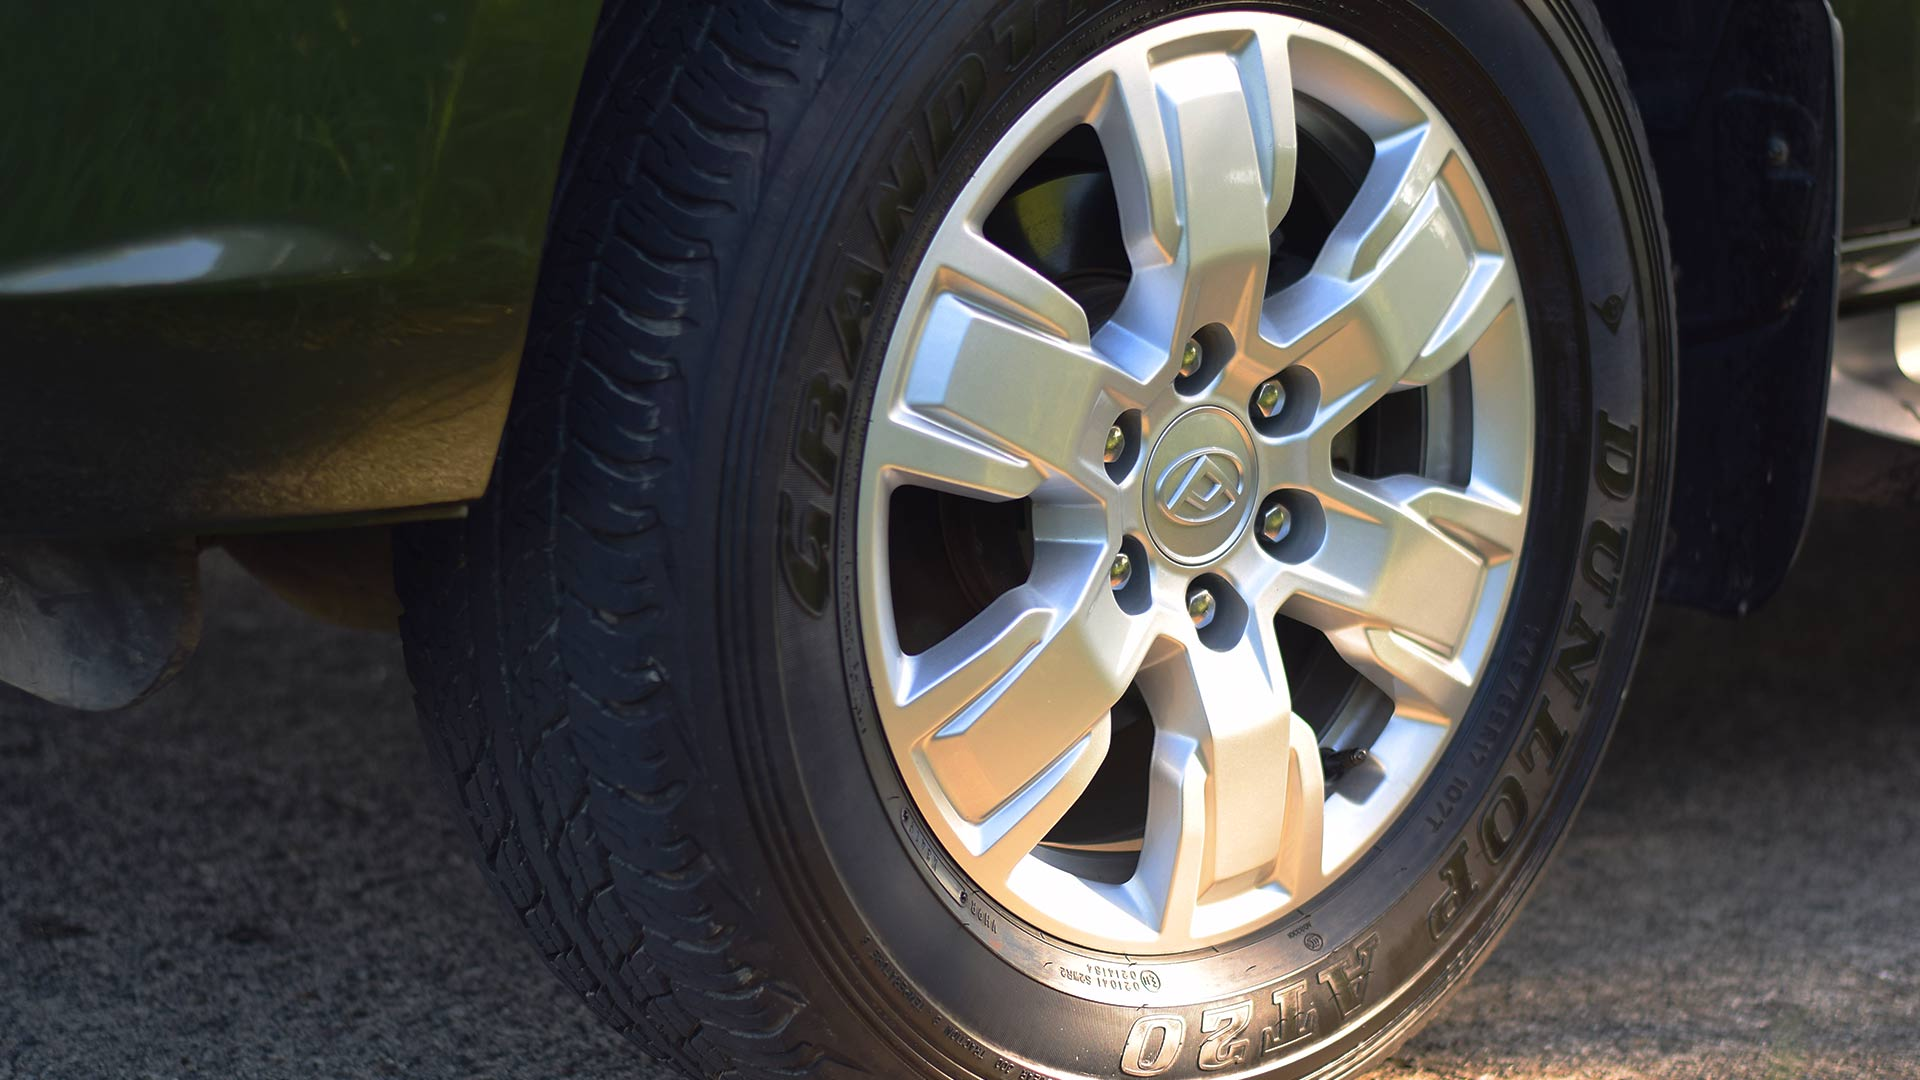 The Maxus T60 tire detail